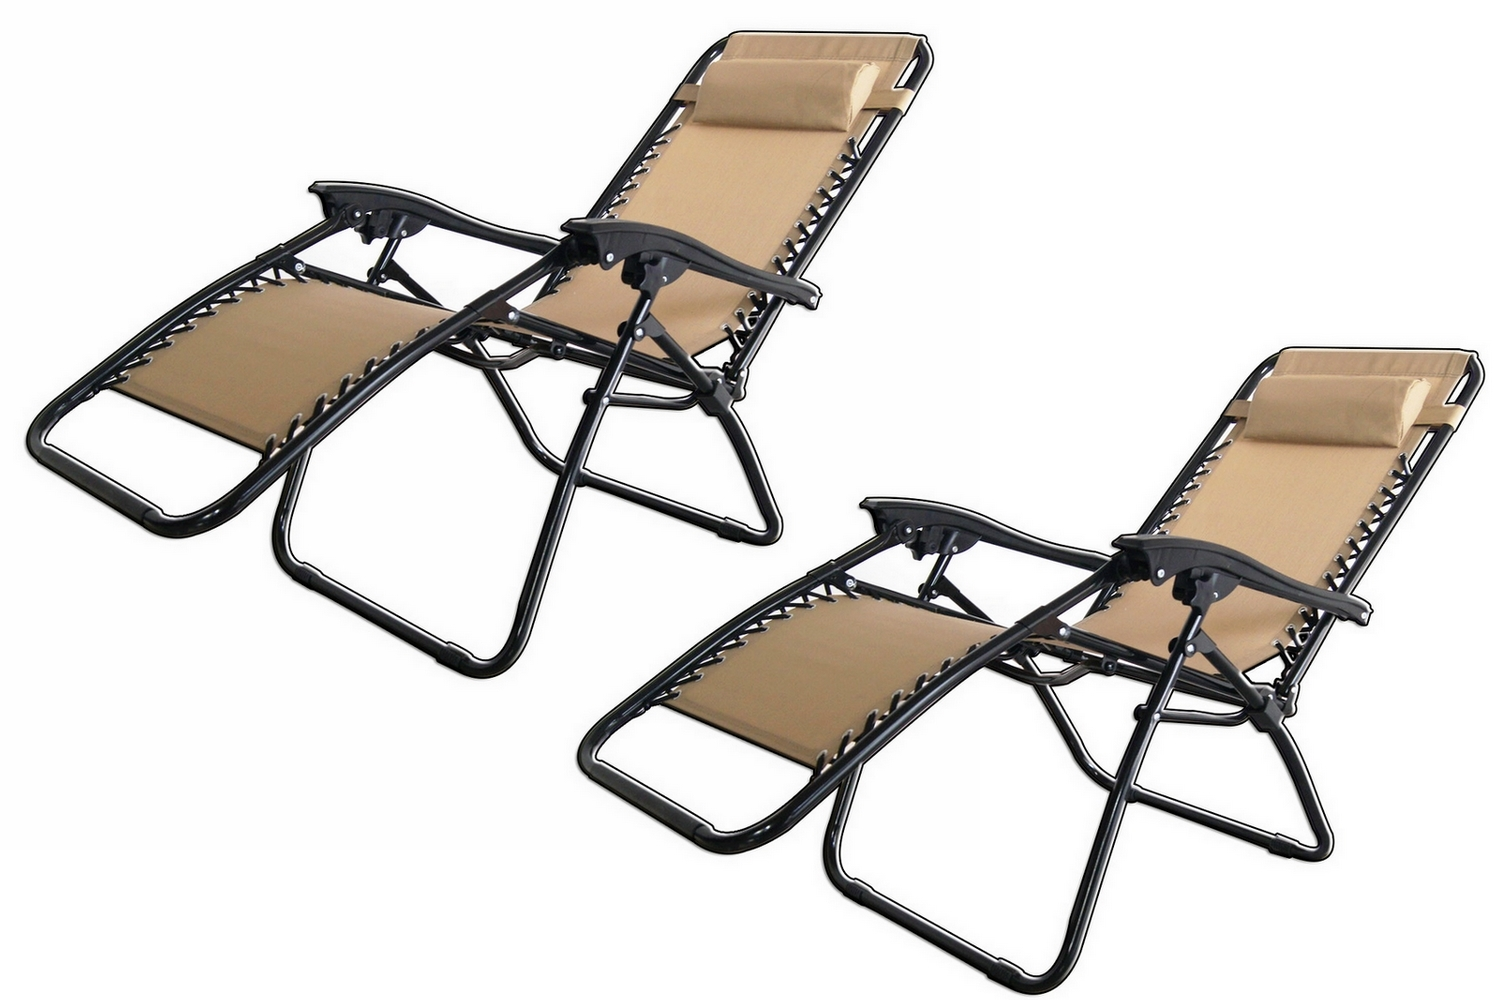 Patio gravity chair - 2x Palm Springs Zero Gravity Chairs Lounge Outdoor